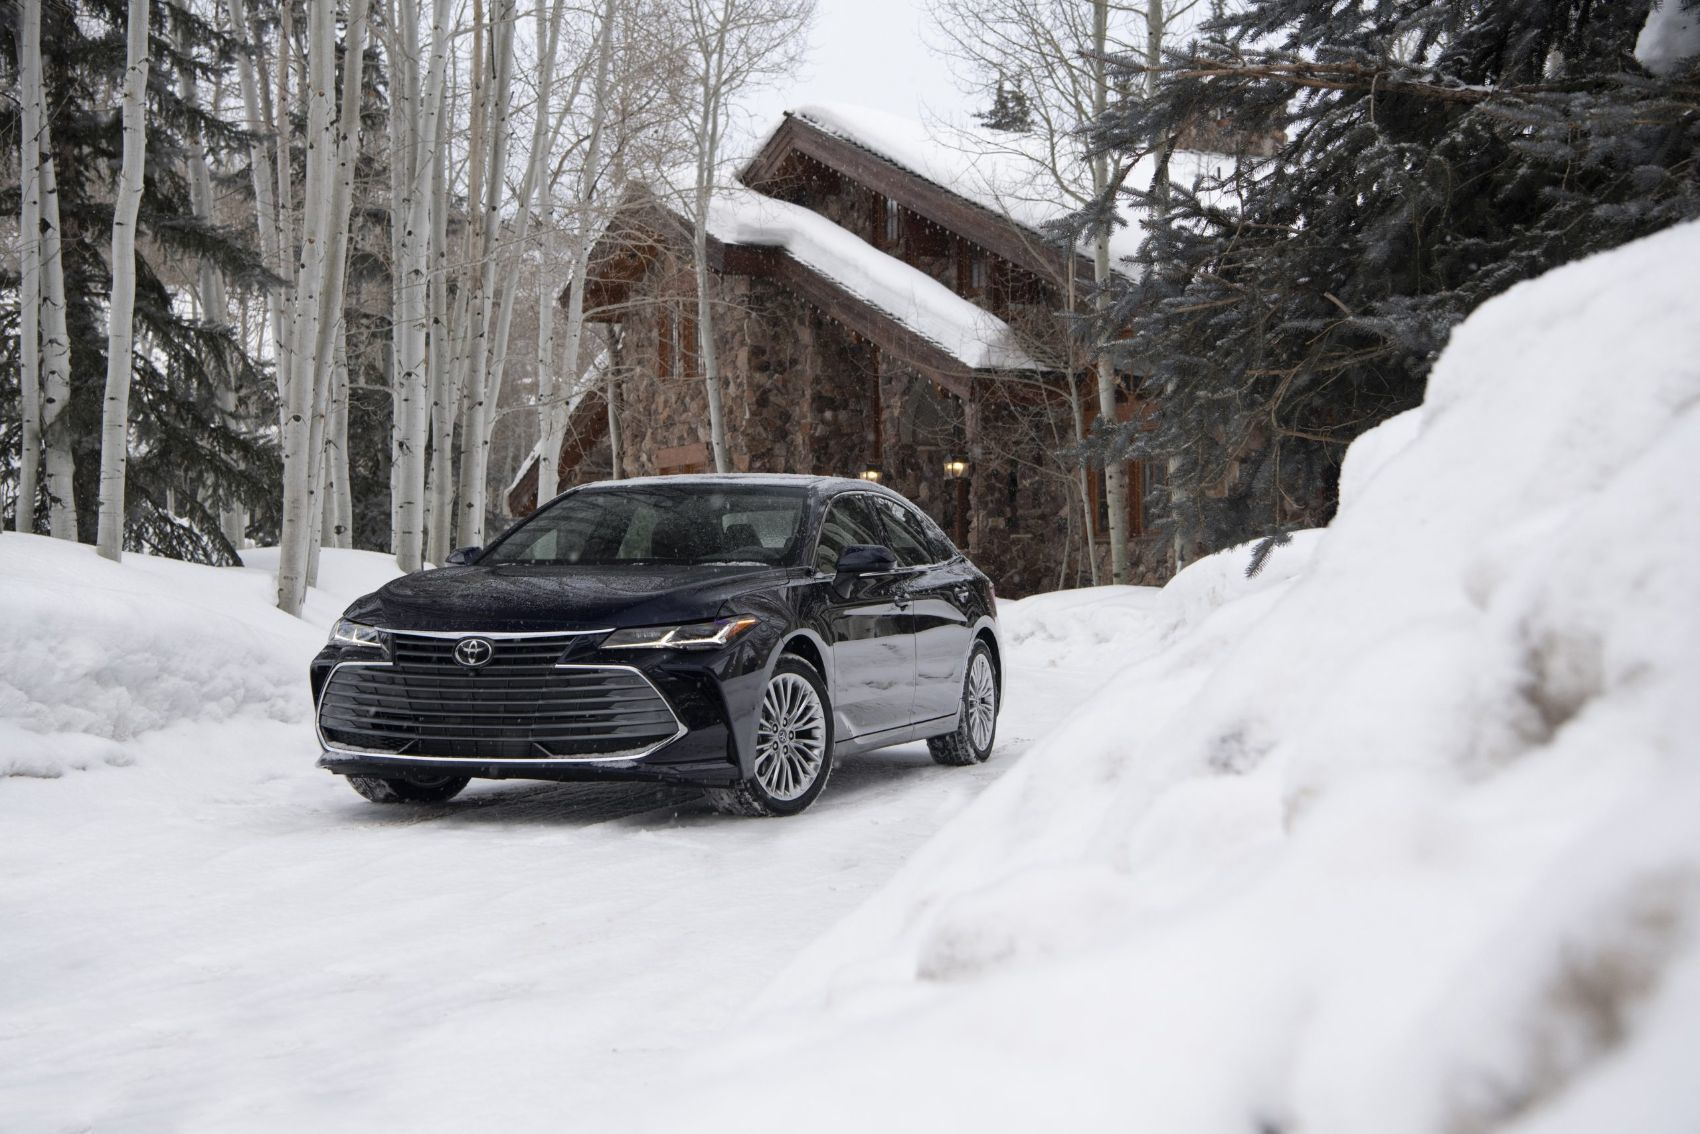 2021 Toyota Avalon Limited with all-wheel drive. Photo: Toyota Motor Sales, U.S.A., Inc.